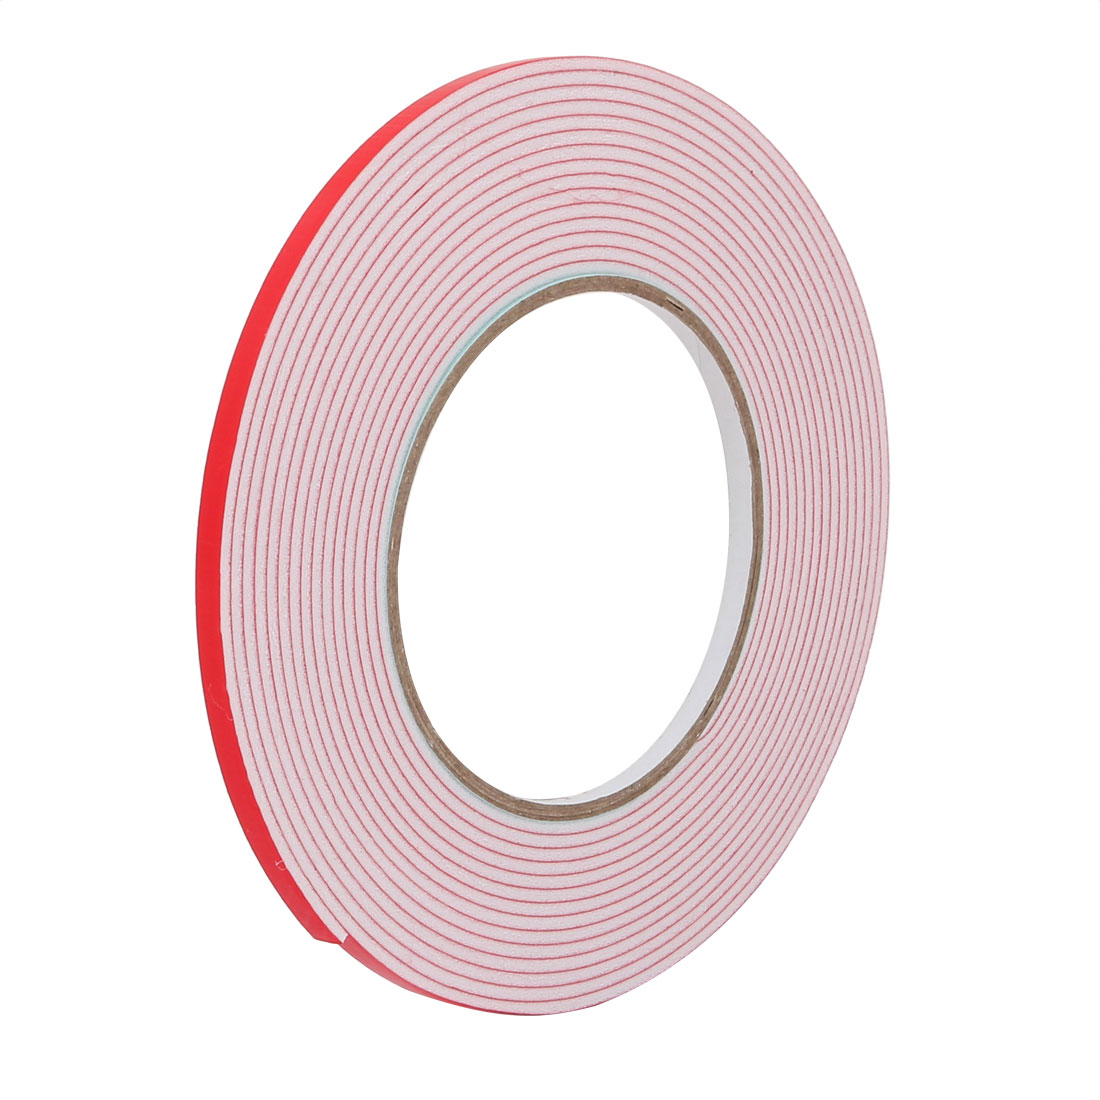 5mm Wide 2mm Thick Single Sided Shockproof EVA Sponge Tape White 5 Meters Long